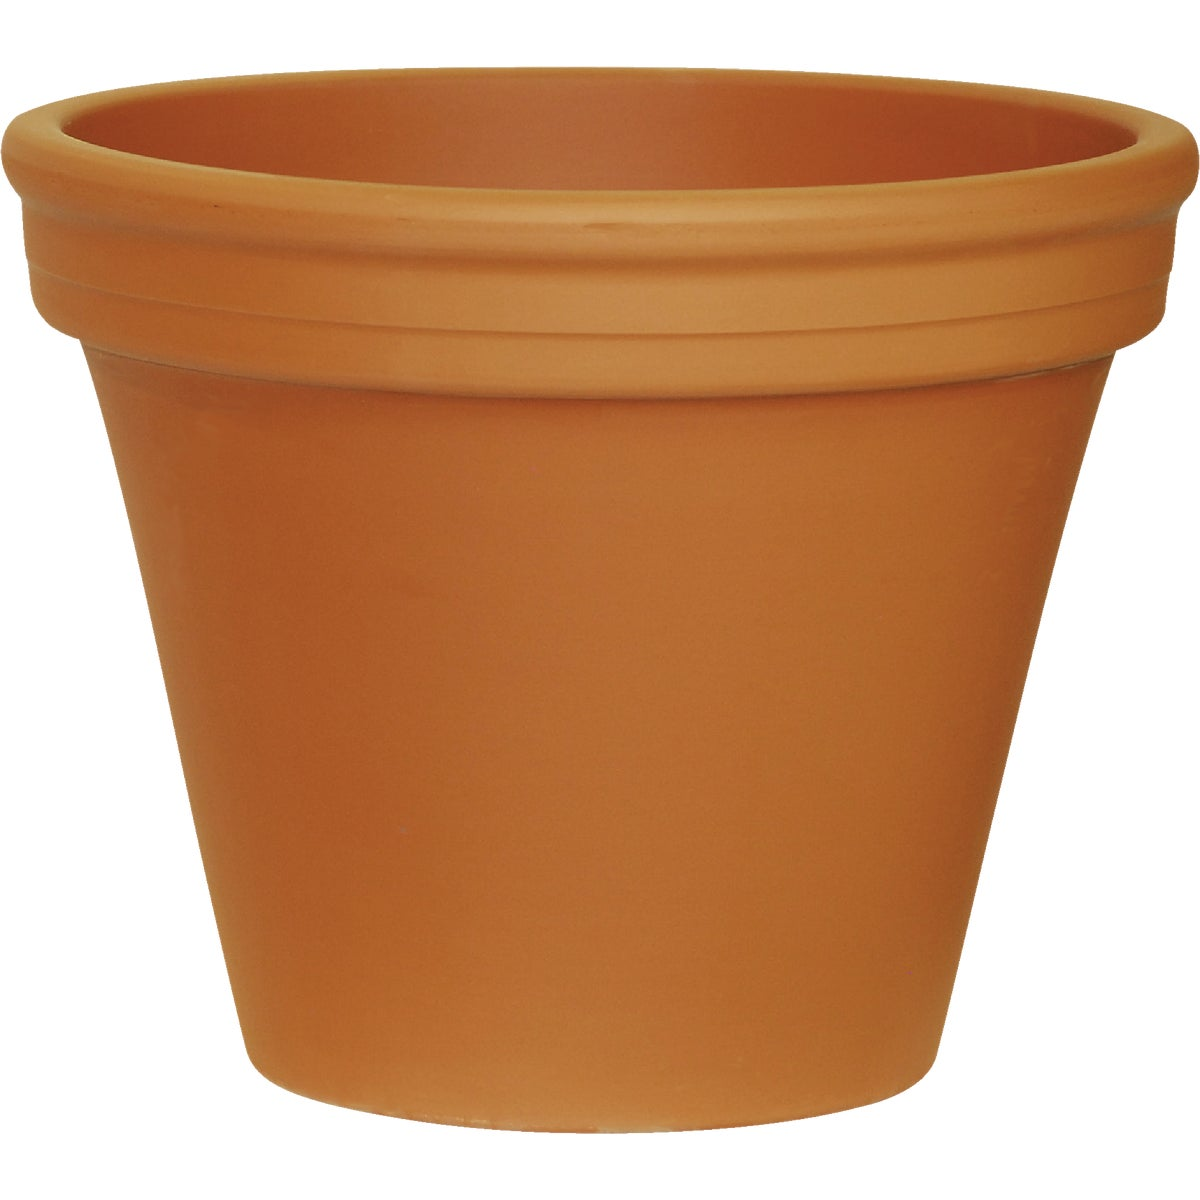 "12"" TERRA COTTA CLAY POT - 01310FZ by Deroma"